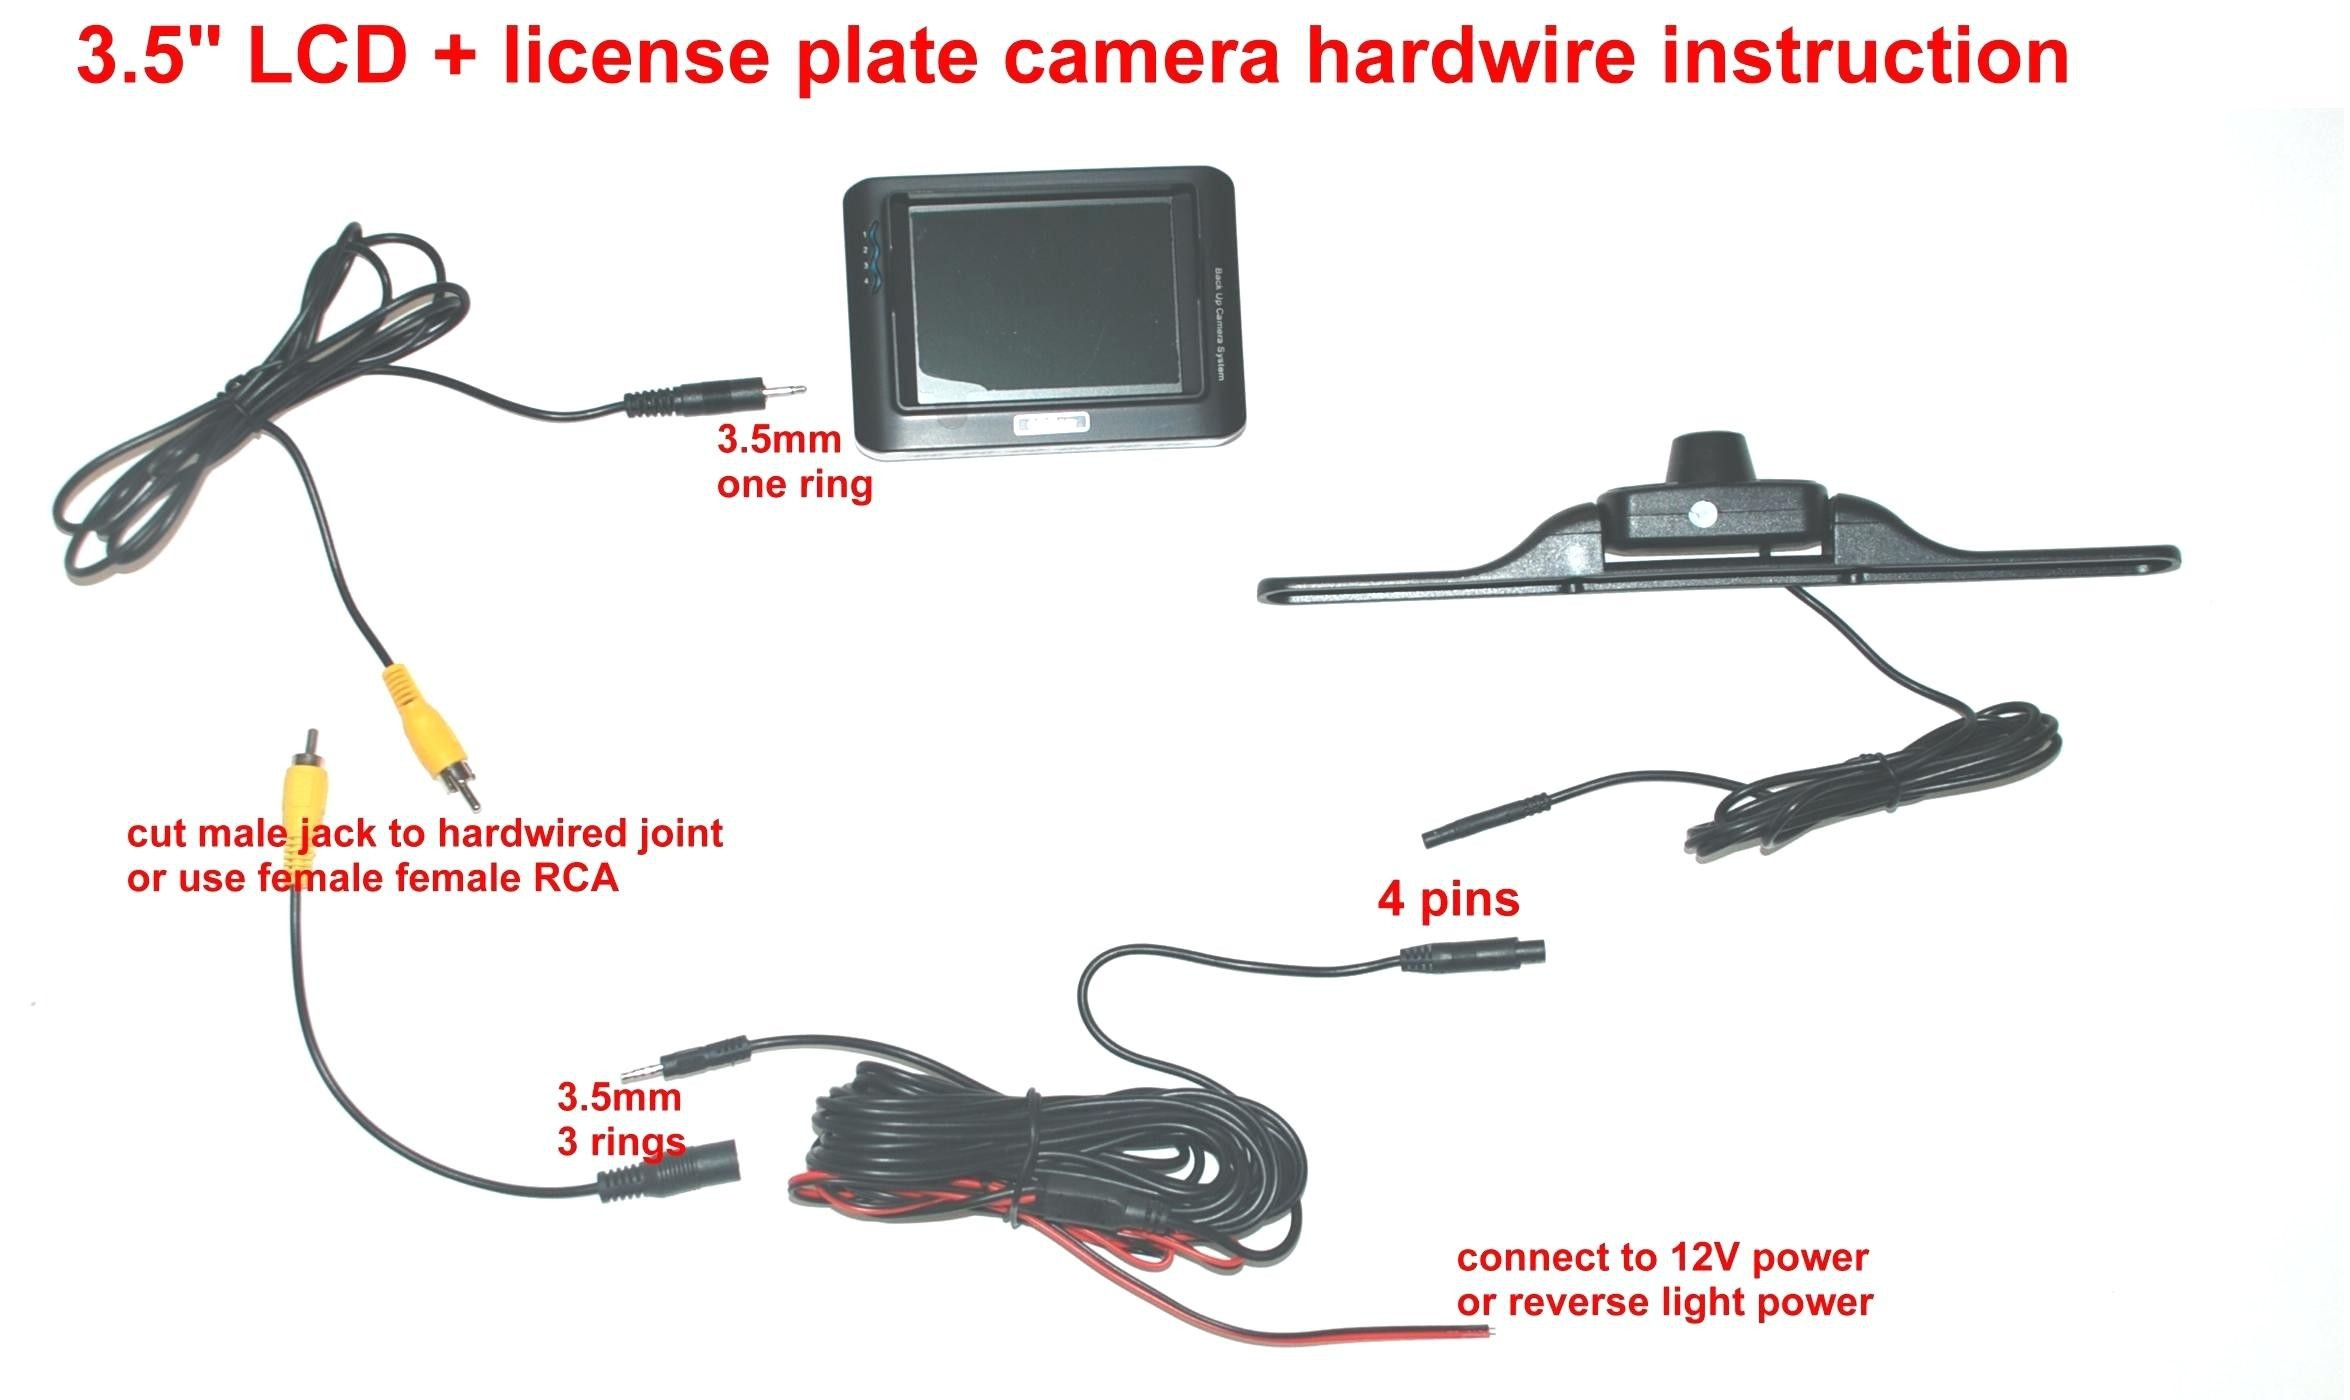 backup camera wiring diagram tft lcd monitor reversing camera wiring diagram | free ...